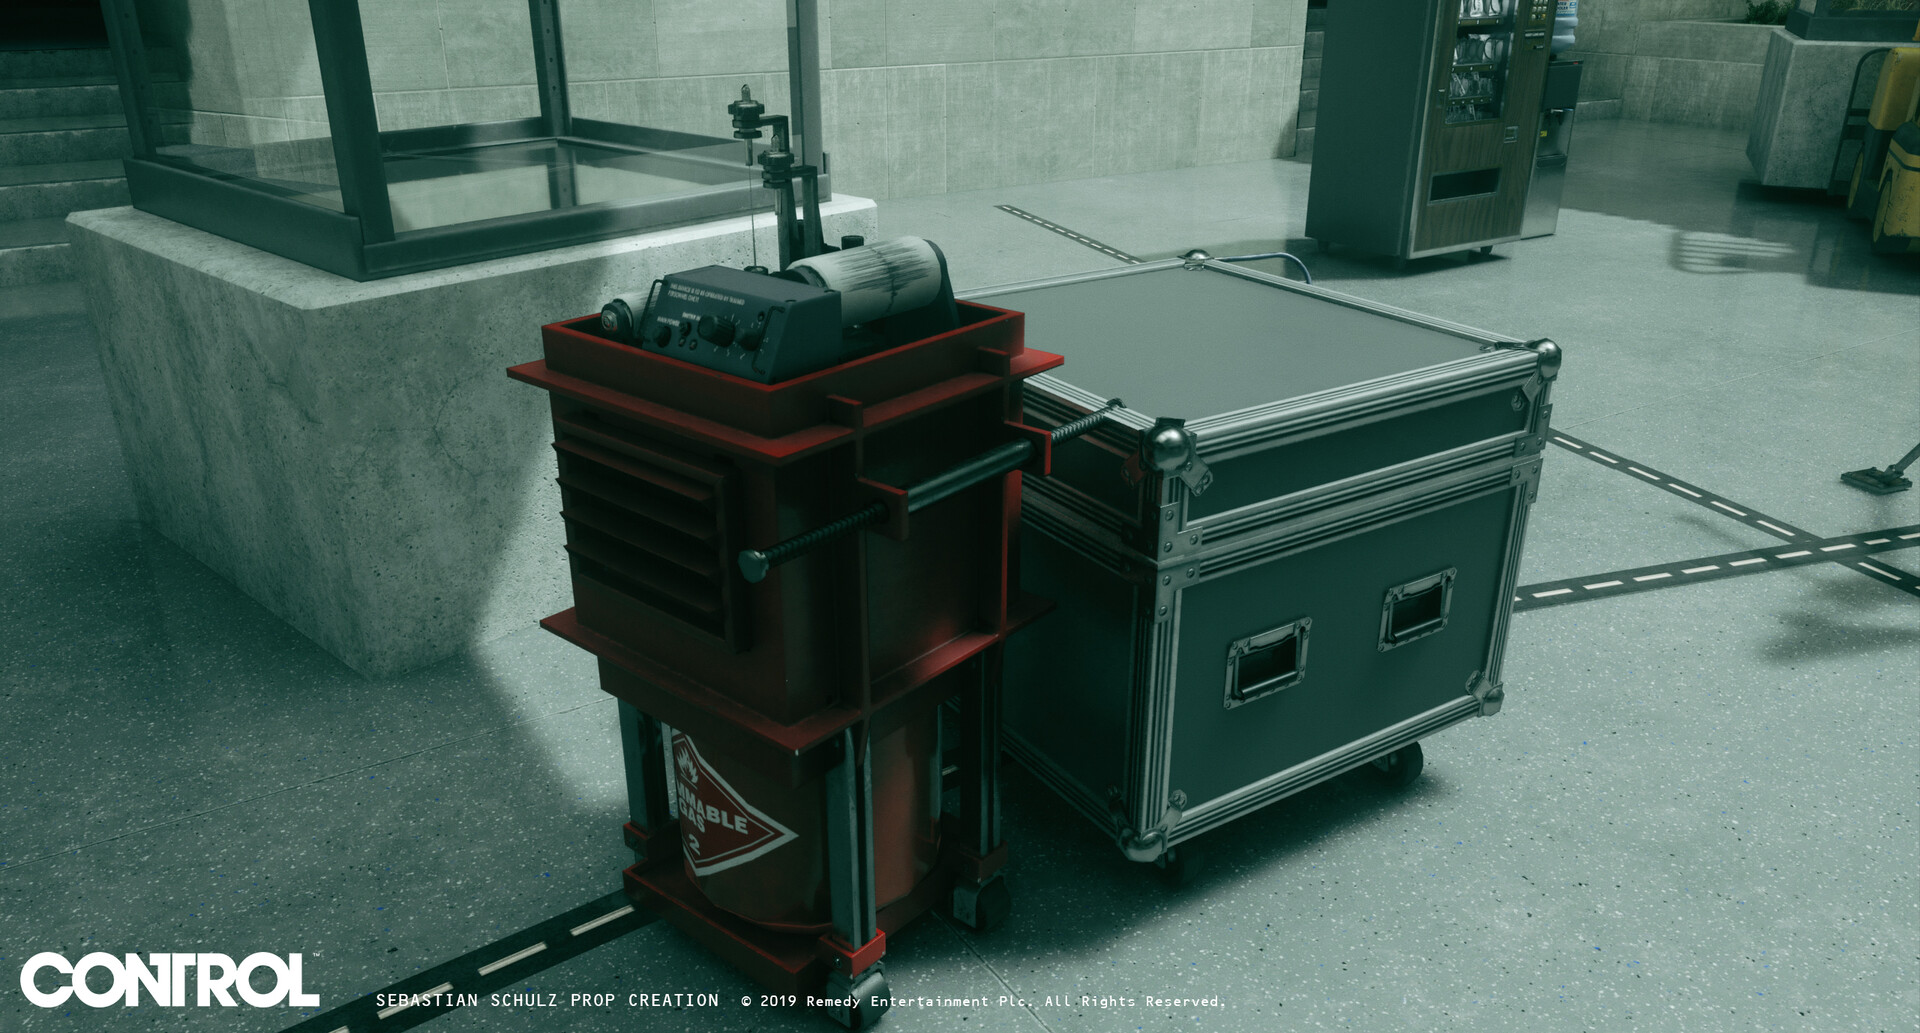 I created the explosive seismograph device as well as the transport crates